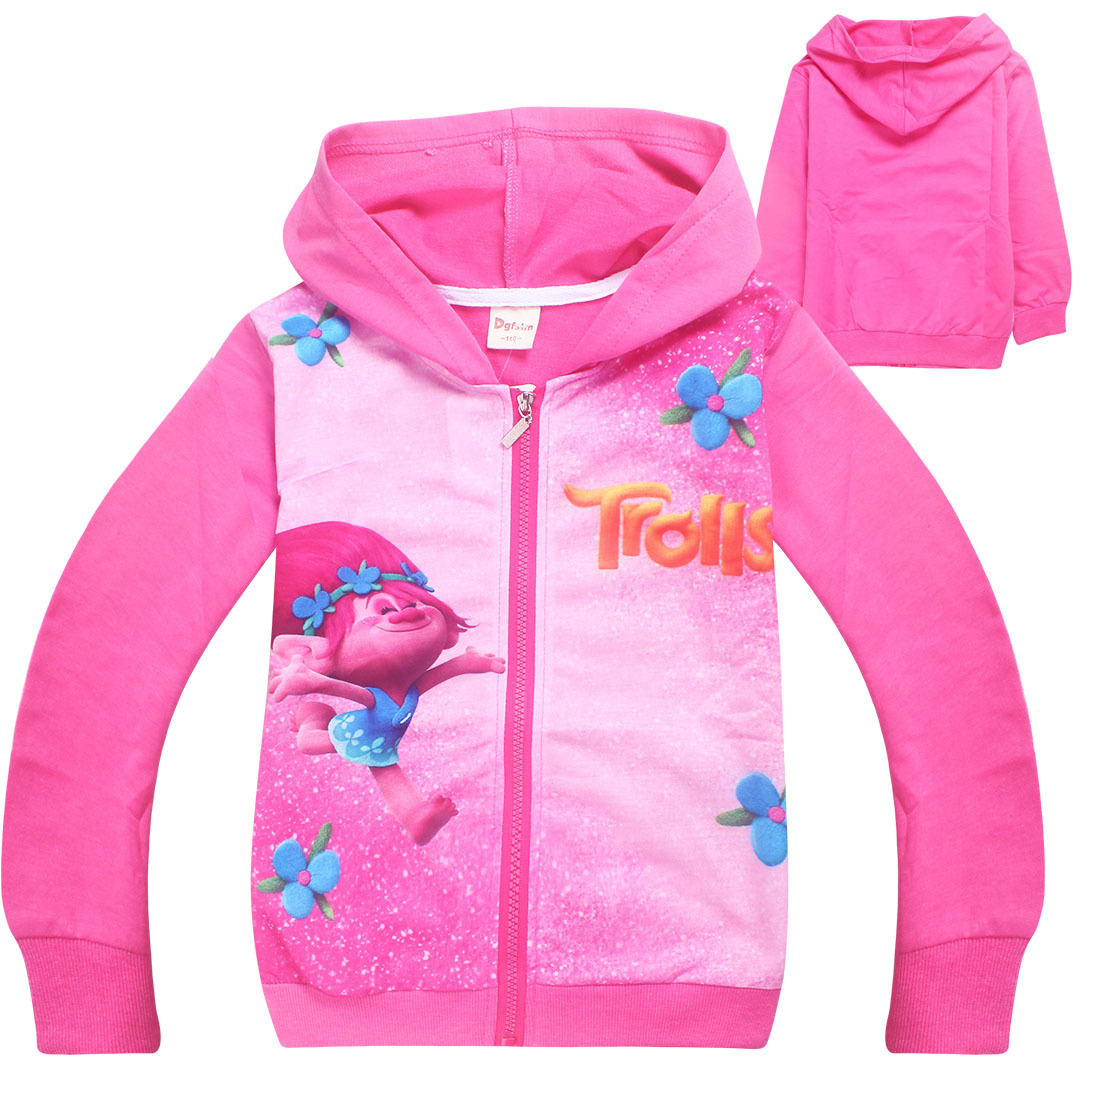 2018 Spring Autumn Girls Hoodies Trolls Zipper Jacket Kids Outerwear Girls Sweatshirt Children Clothes Baby Girl Clothes v tree girls jacket coat fleece girls hoodies spring autumn kids sweatshirt warm girls tops coat zipper clothes baby clothes